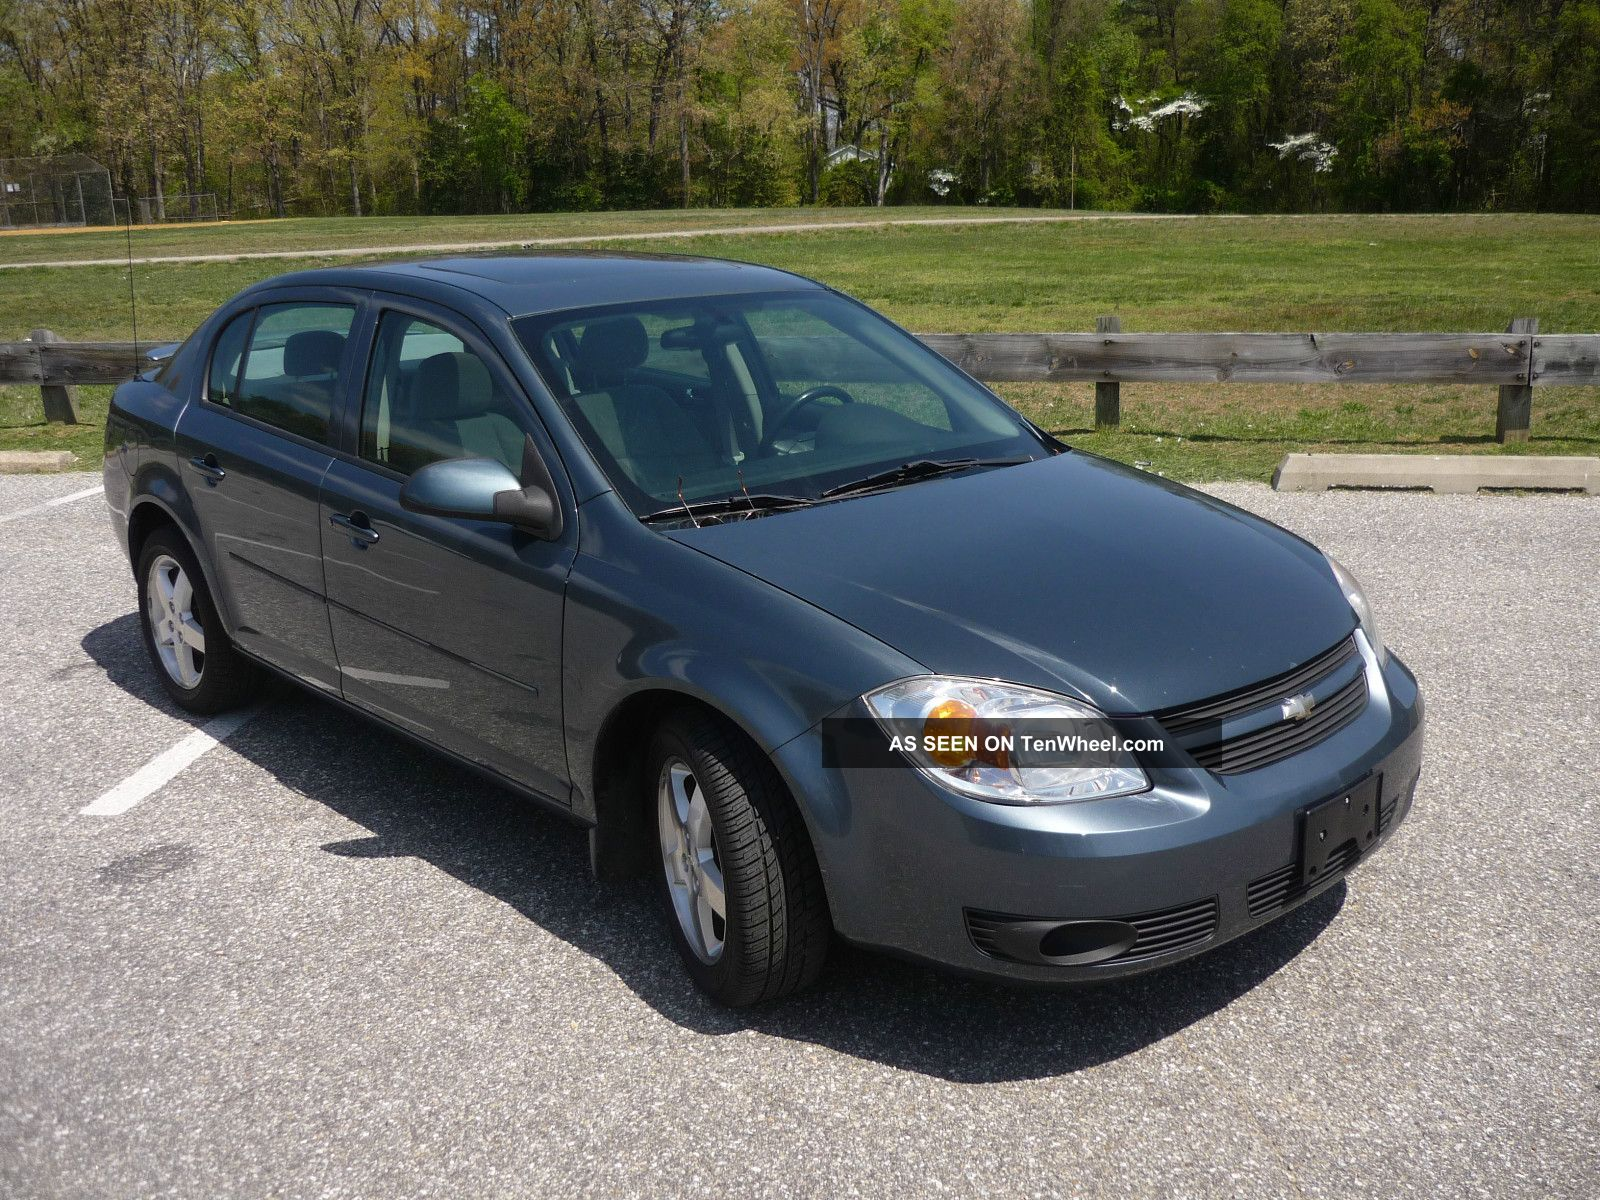 2005 chevrolet cobalt ls 5 speed recovered theft. Black Bedroom Furniture Sets. Home Design Ideas